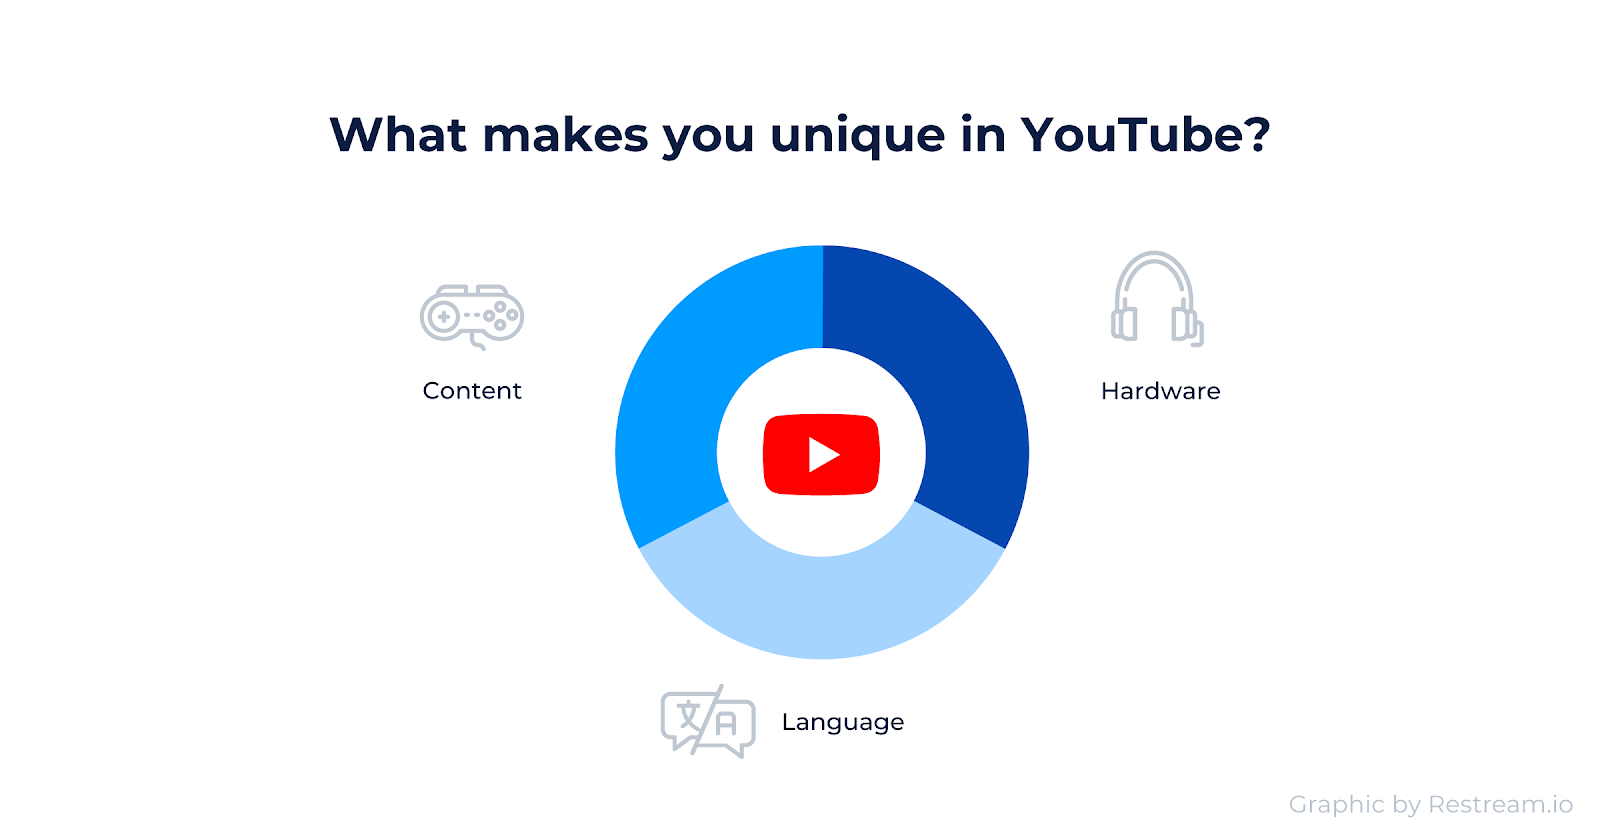 Content, Hardware, and Language make you unique in Youtube